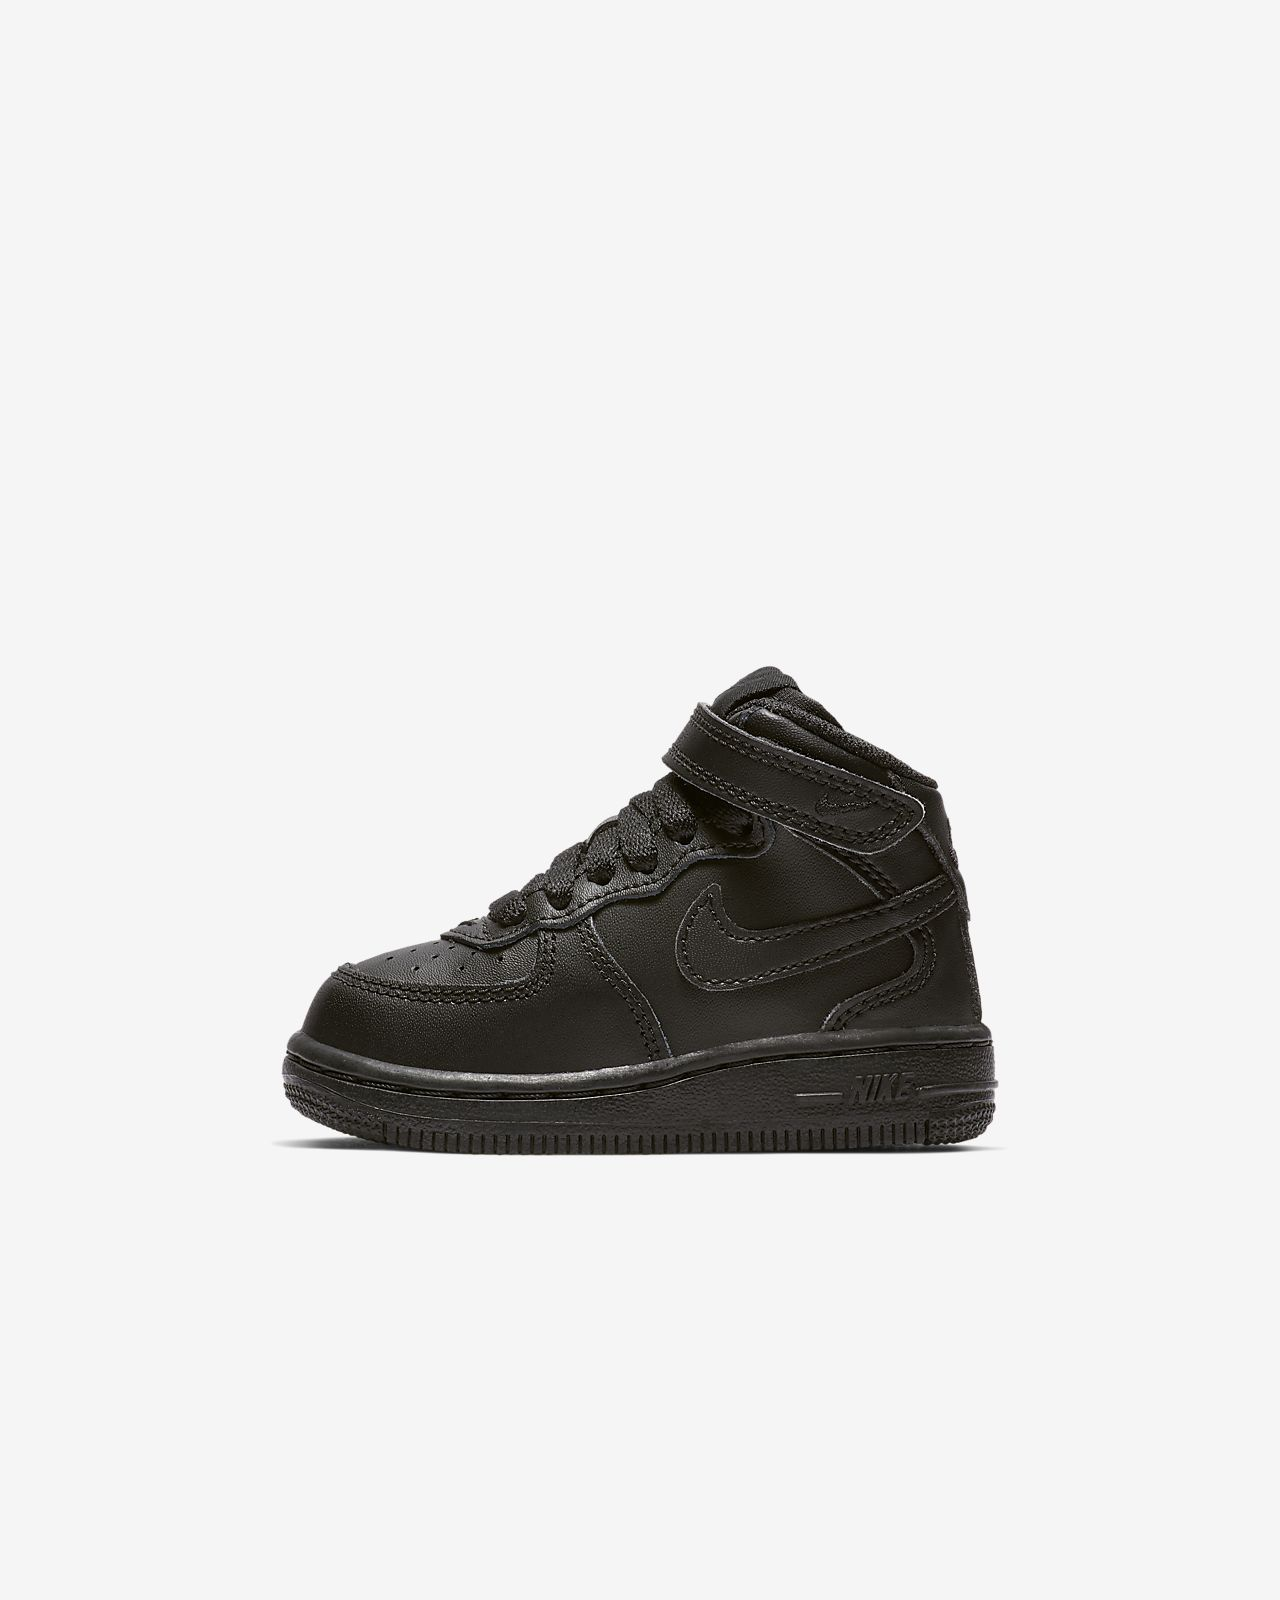 Sko Nike Air Force 1 Mid för baby/små barn